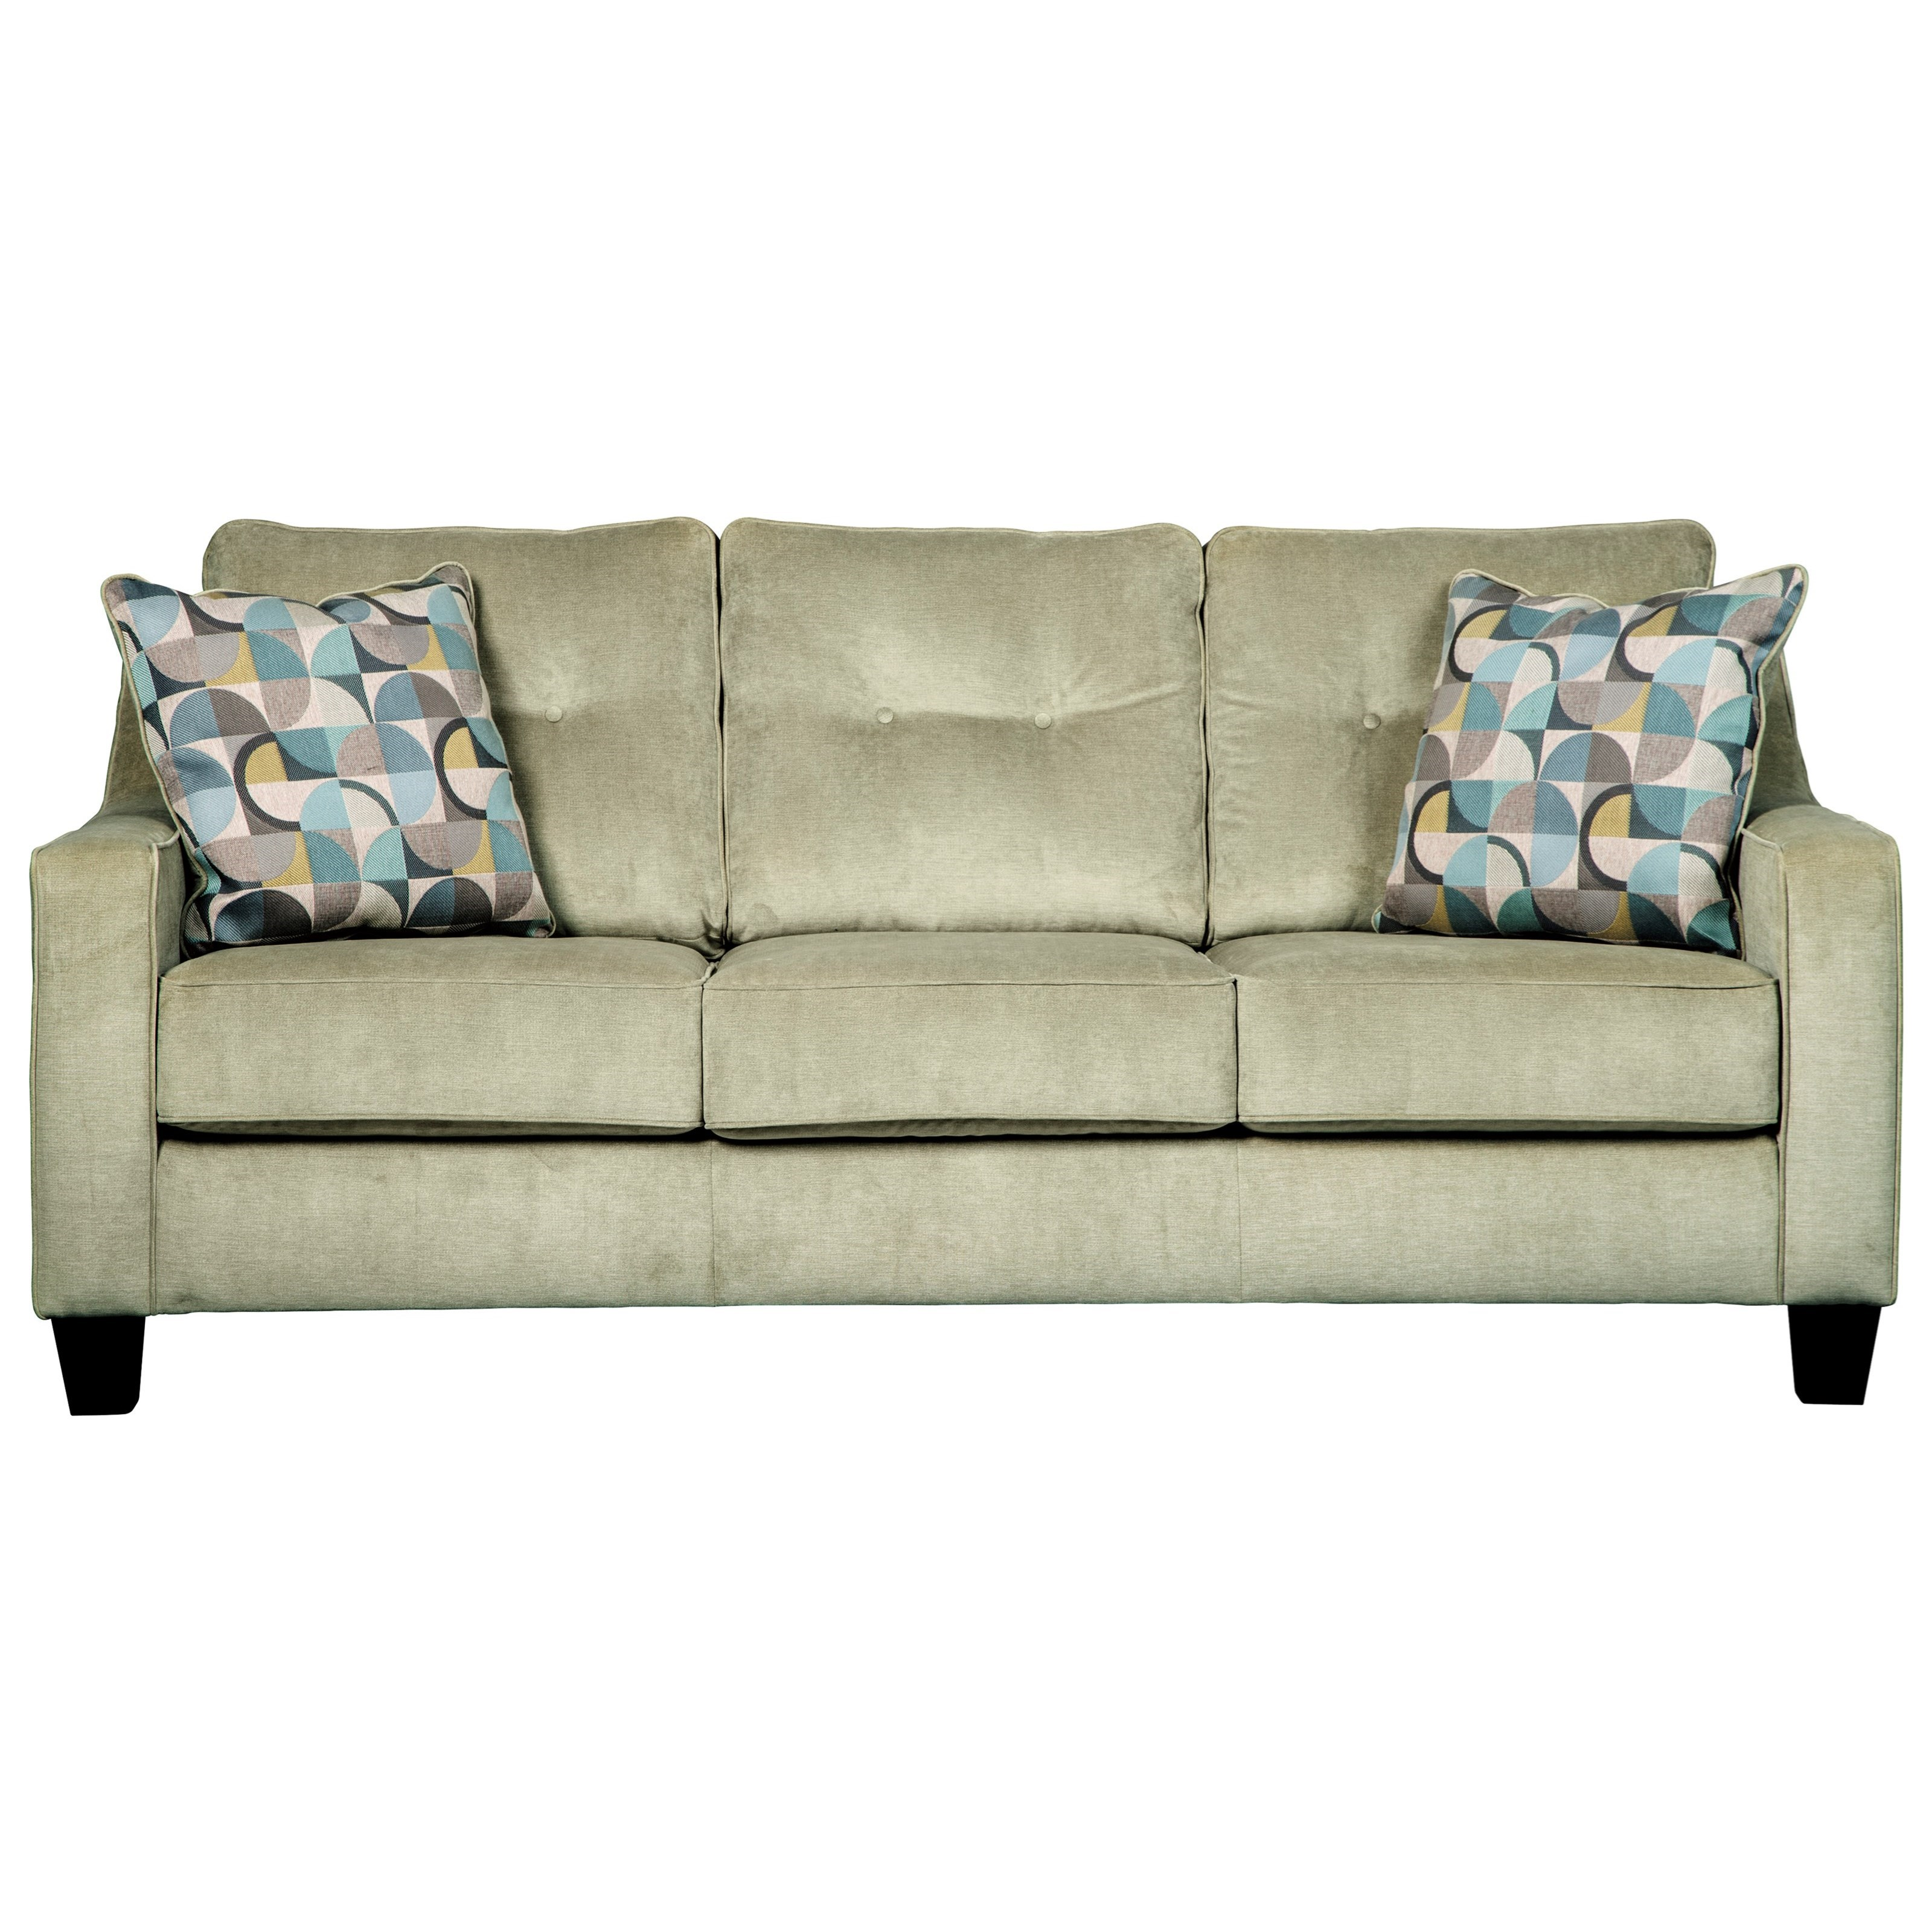 reviews sofa cushion janley replacement breville benchcraft danely furniture cupboard chaise sleeper